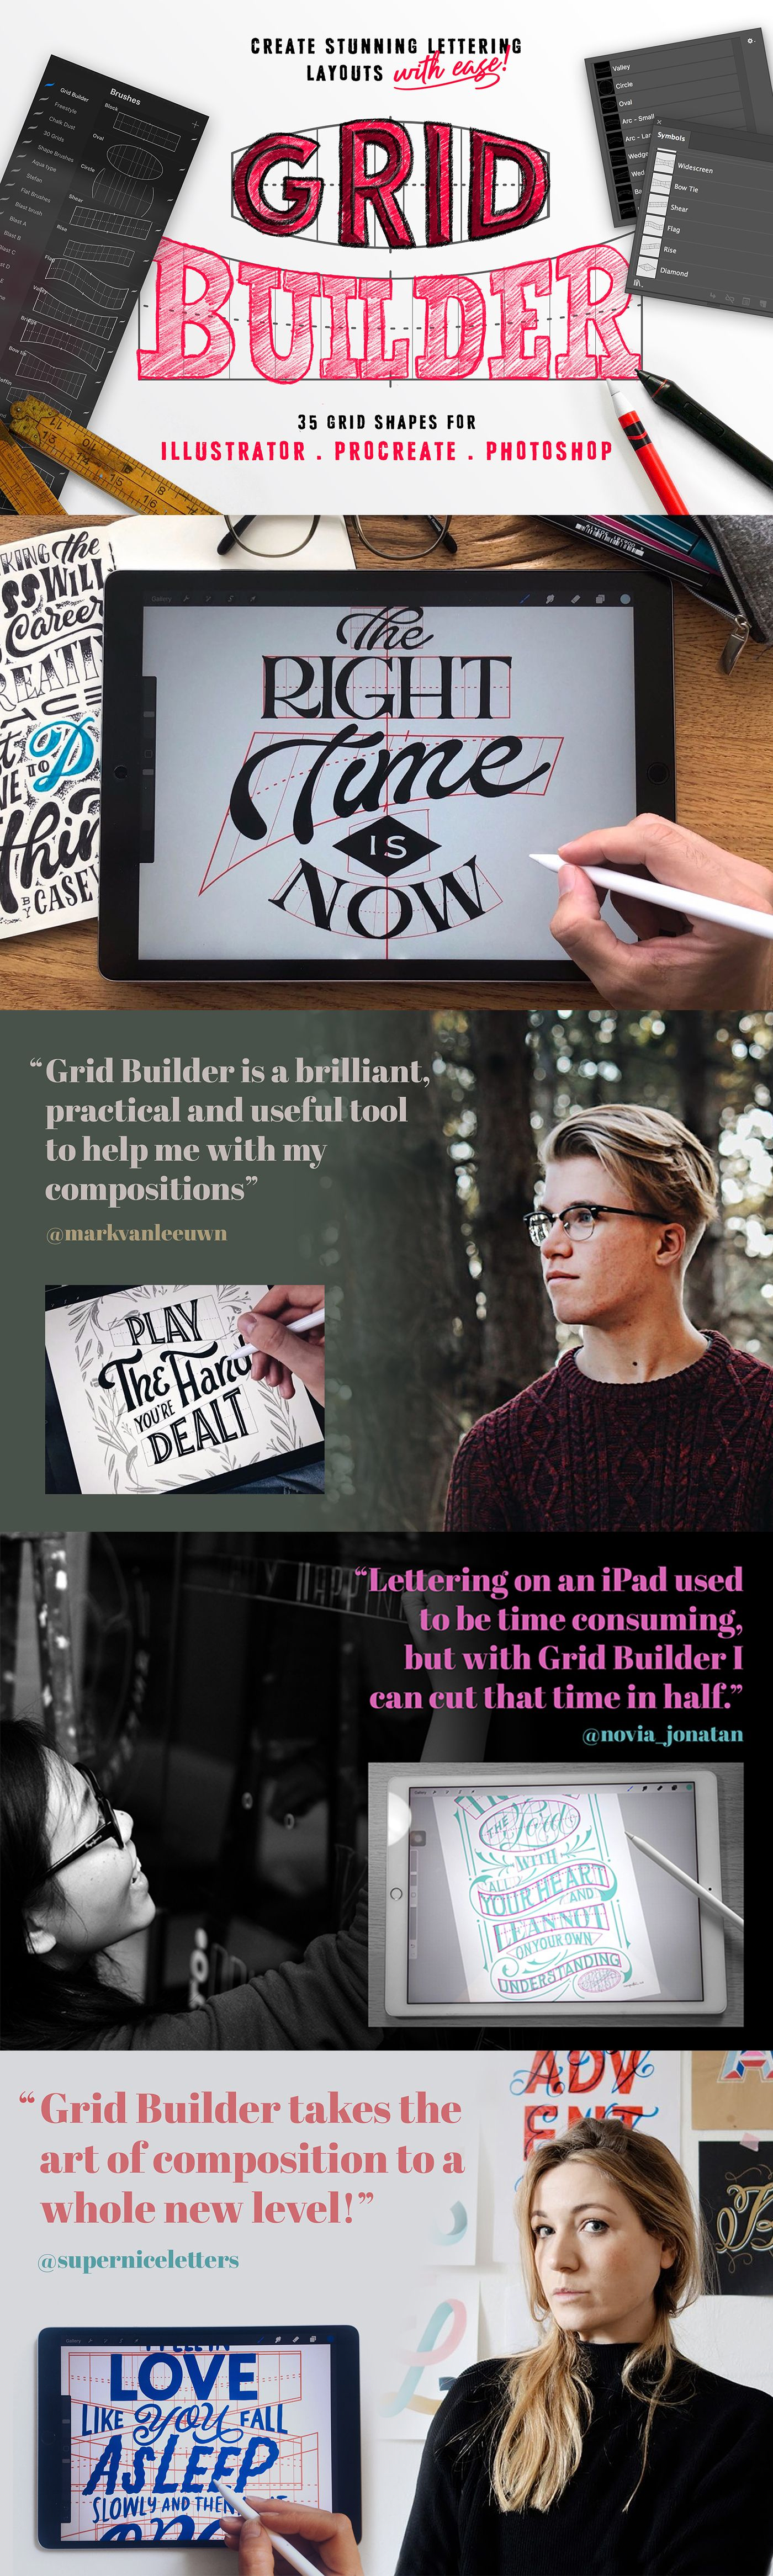 Grid Builder - Creating stunning lettering layouts has never been easier!  For Procreate, Photoshop & Illustrator